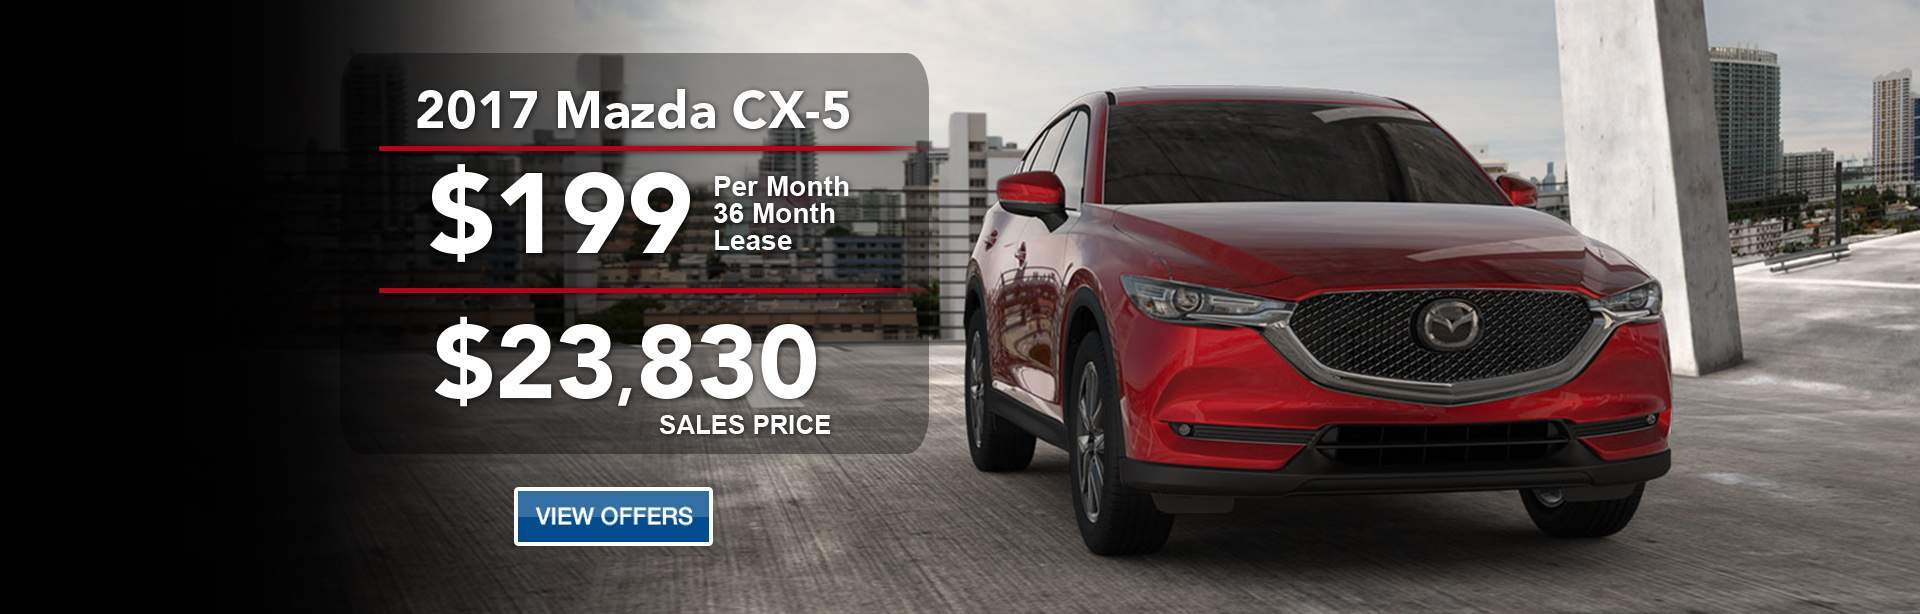 CX-5 deals at Bert Ogden Mazda Mission